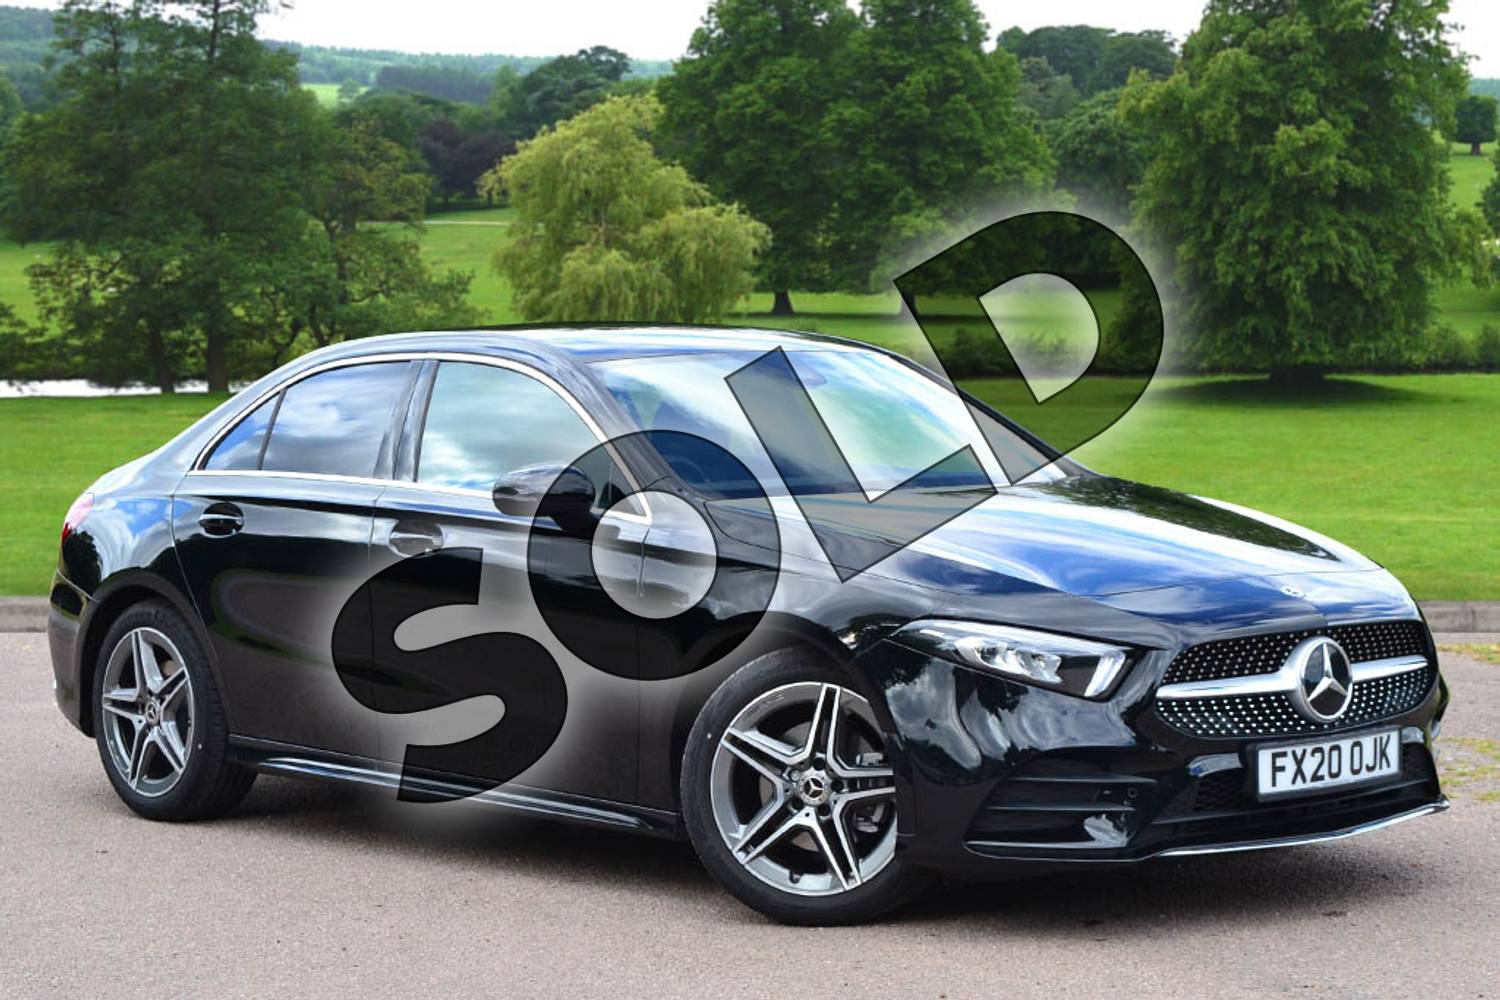 2020 Mercedes-Benz A Class Saloon A200 AMG Line Executive 4dr in Cosmos Black Metallic at Mercedes-Benz of Grimsby